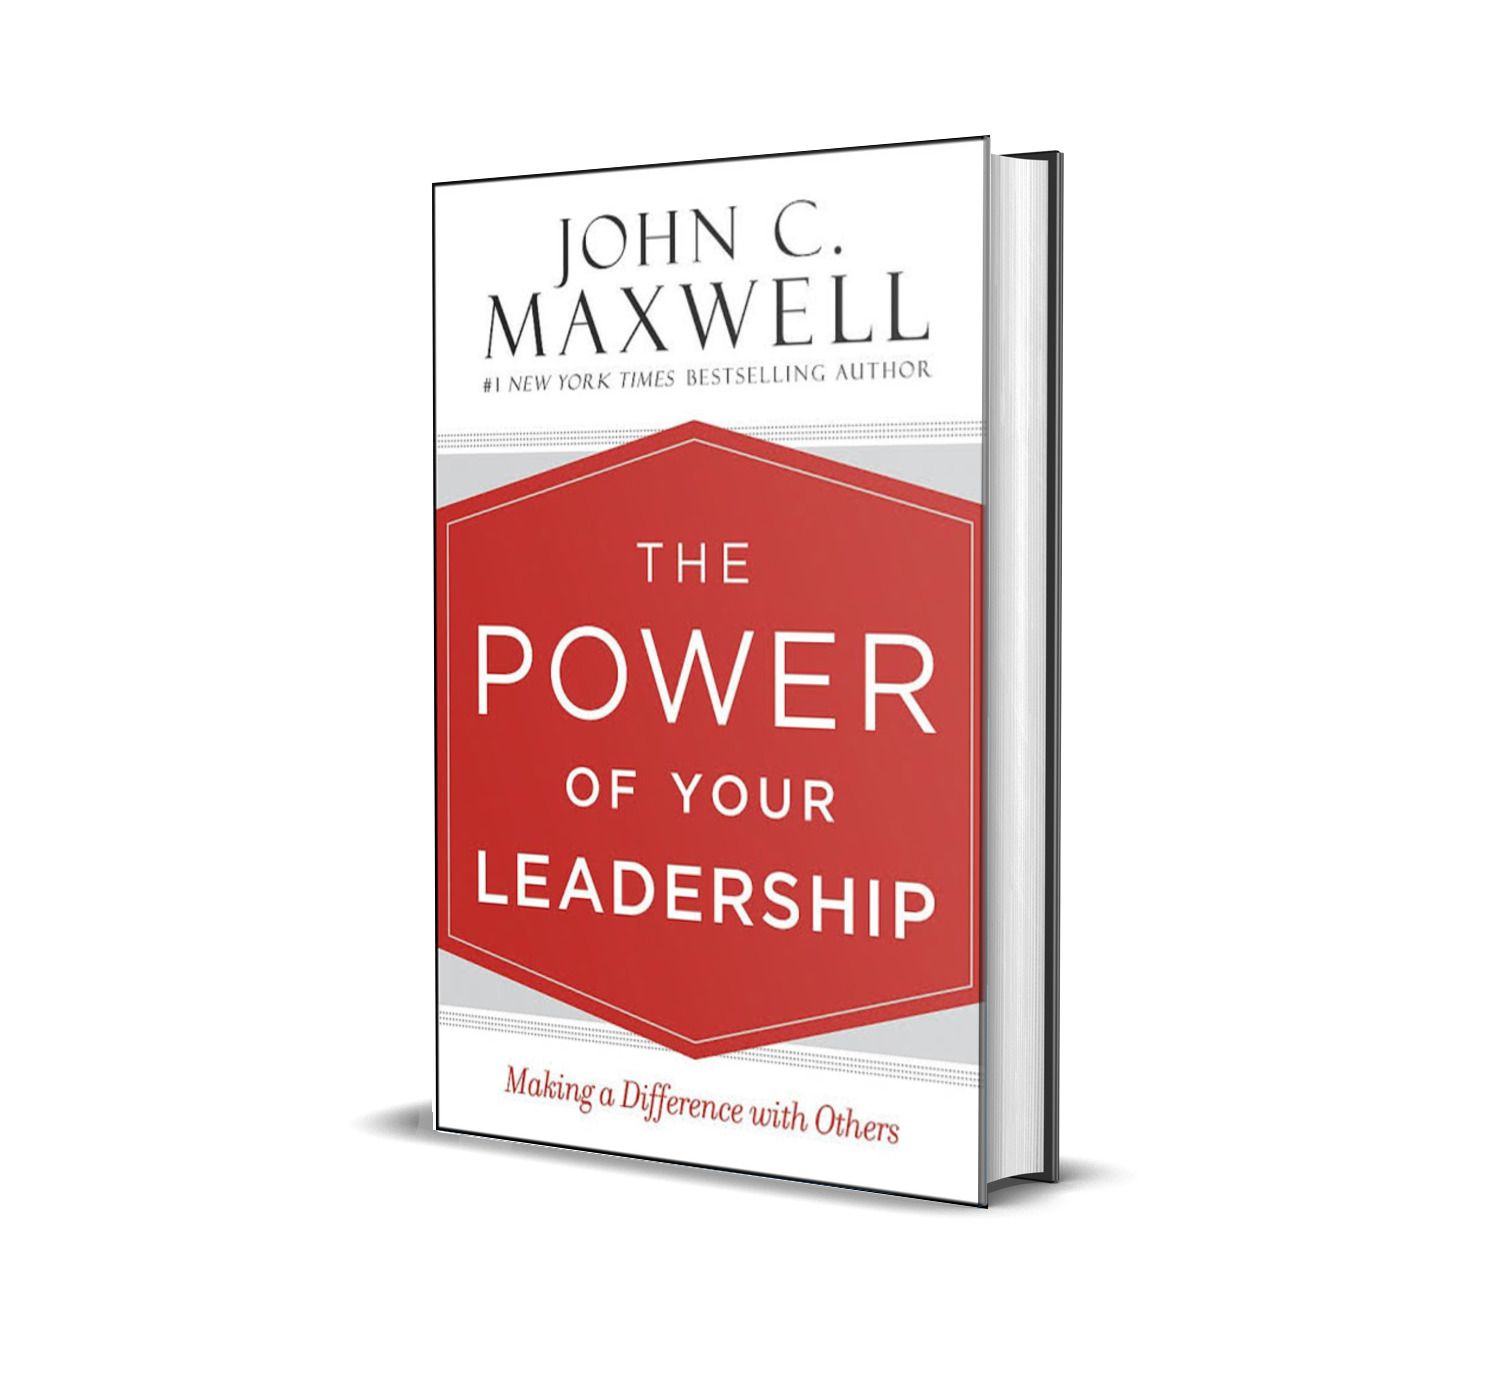 The power of your leadership- John C Maxwell